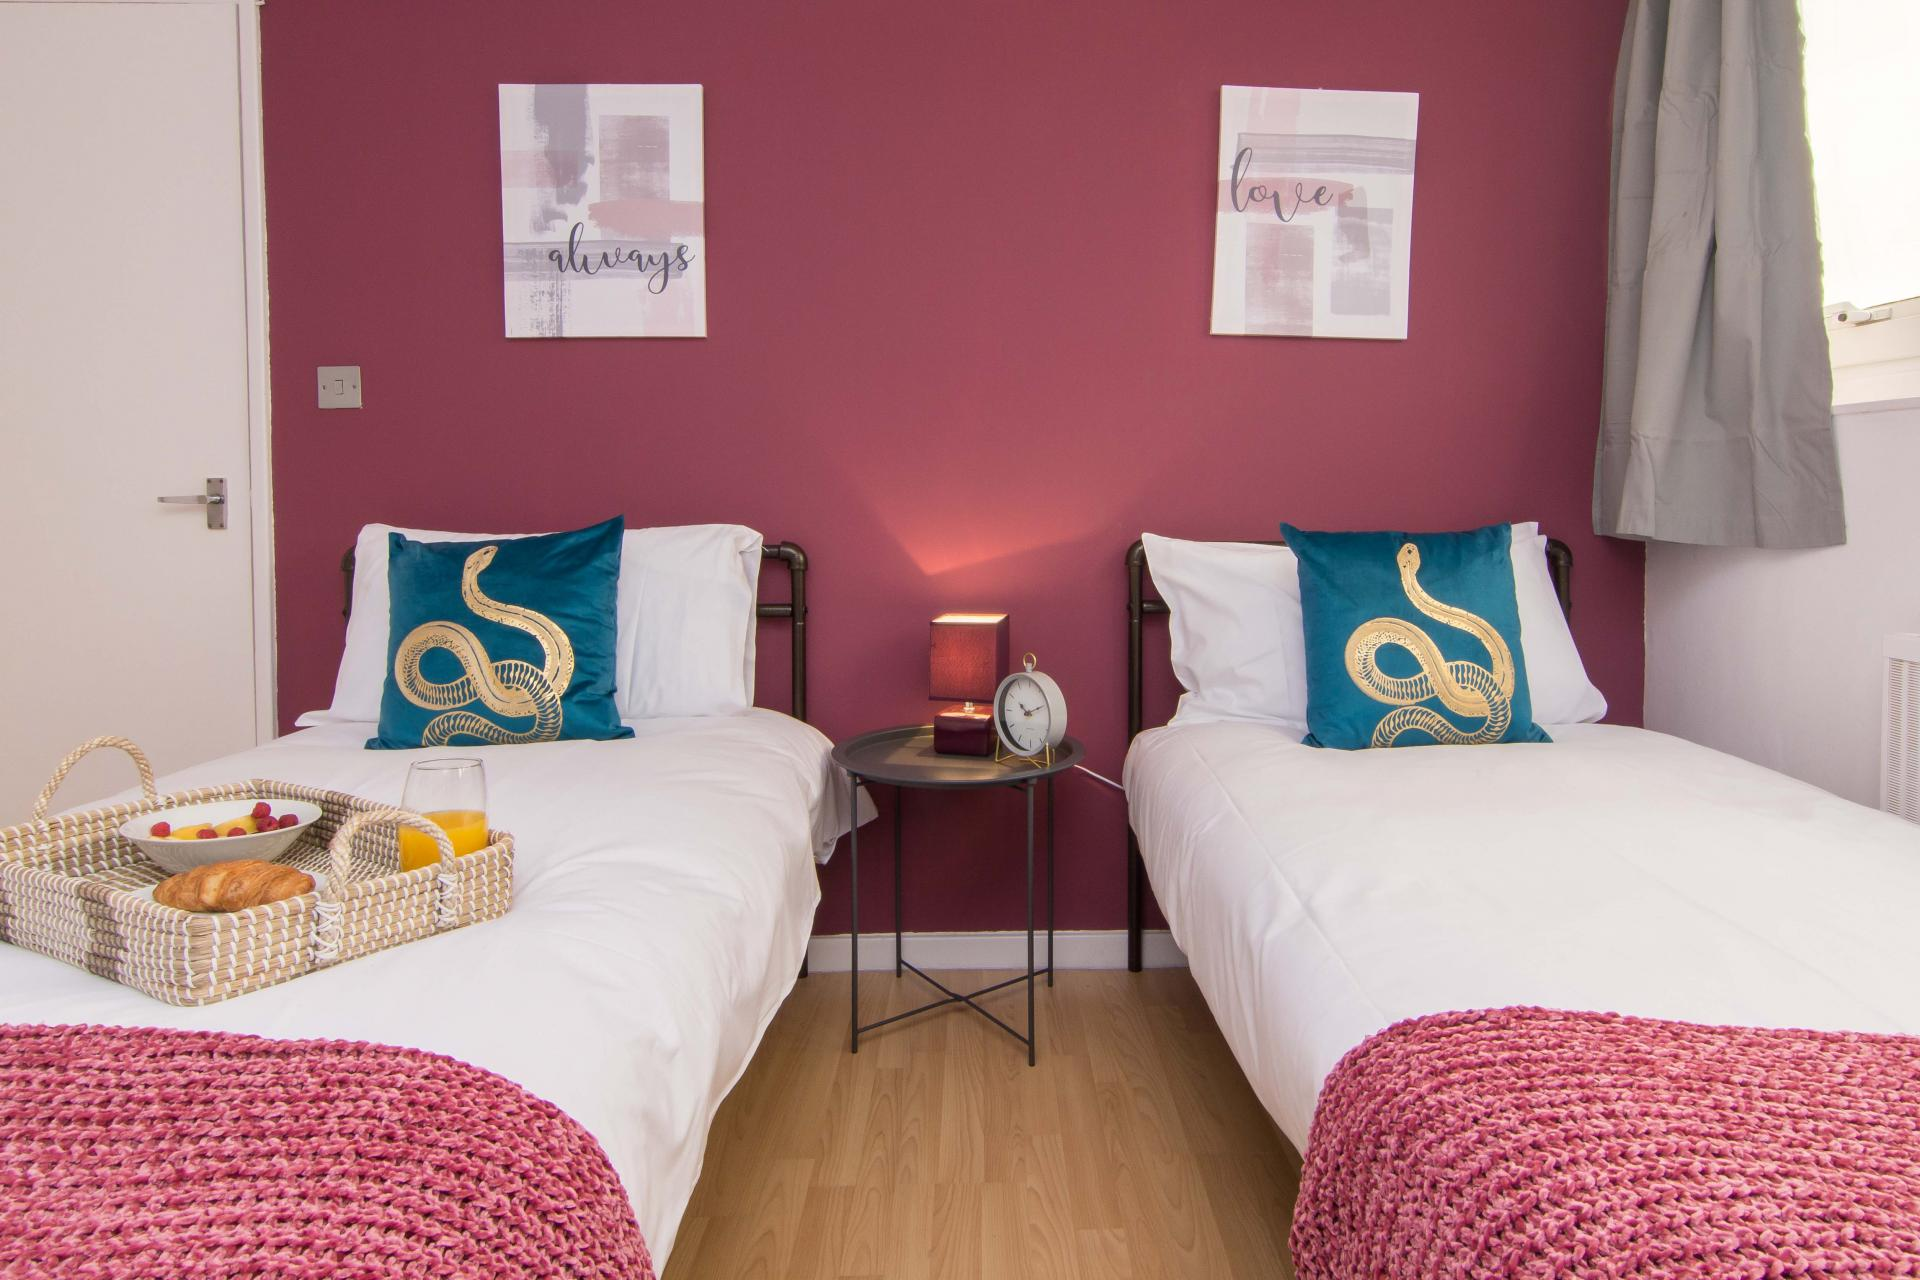 Twin beds at Victoria Centre Apartment, Centre, Nottingham - Citybase Apartments